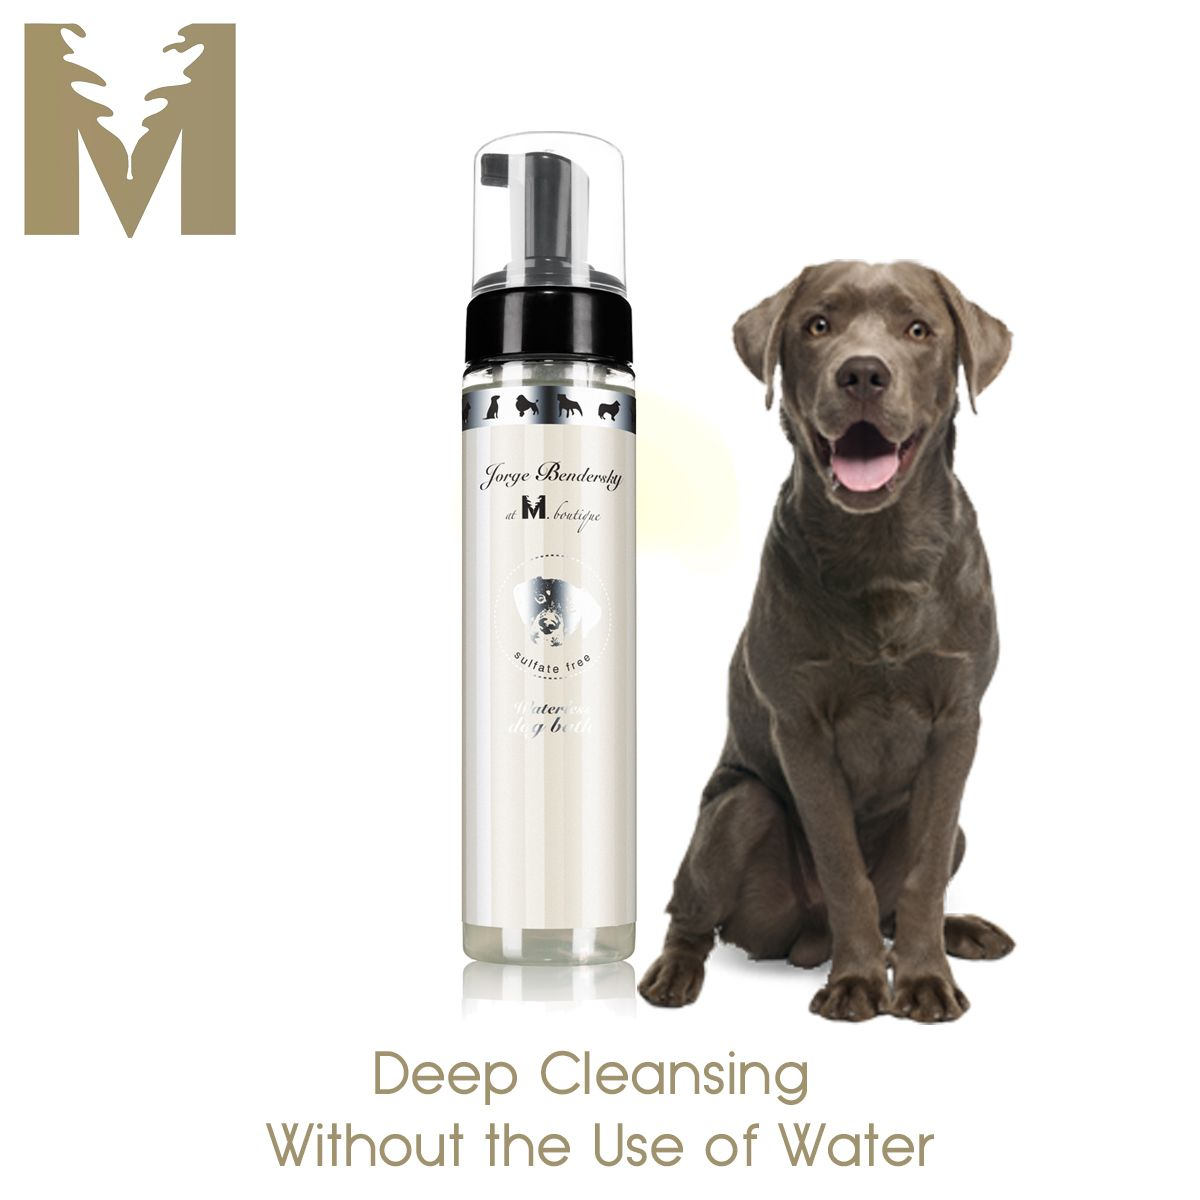 WATERLESS DOG BATH $18 Grooming is bonding.  Jorge at M Boutique Waterless Dog Bath allows for rich, deep cleansing without the use of water or rinsing.  Convenient and easy to use anywhere, our thick foaming formula loosens dirt while helping to maintain a soft and manageable coat.  Rich in vitamins and all natural extracts and exquisitely scented with our signature neroli & wild mint essential oils blend.  Amazing aromatherapy awaits…